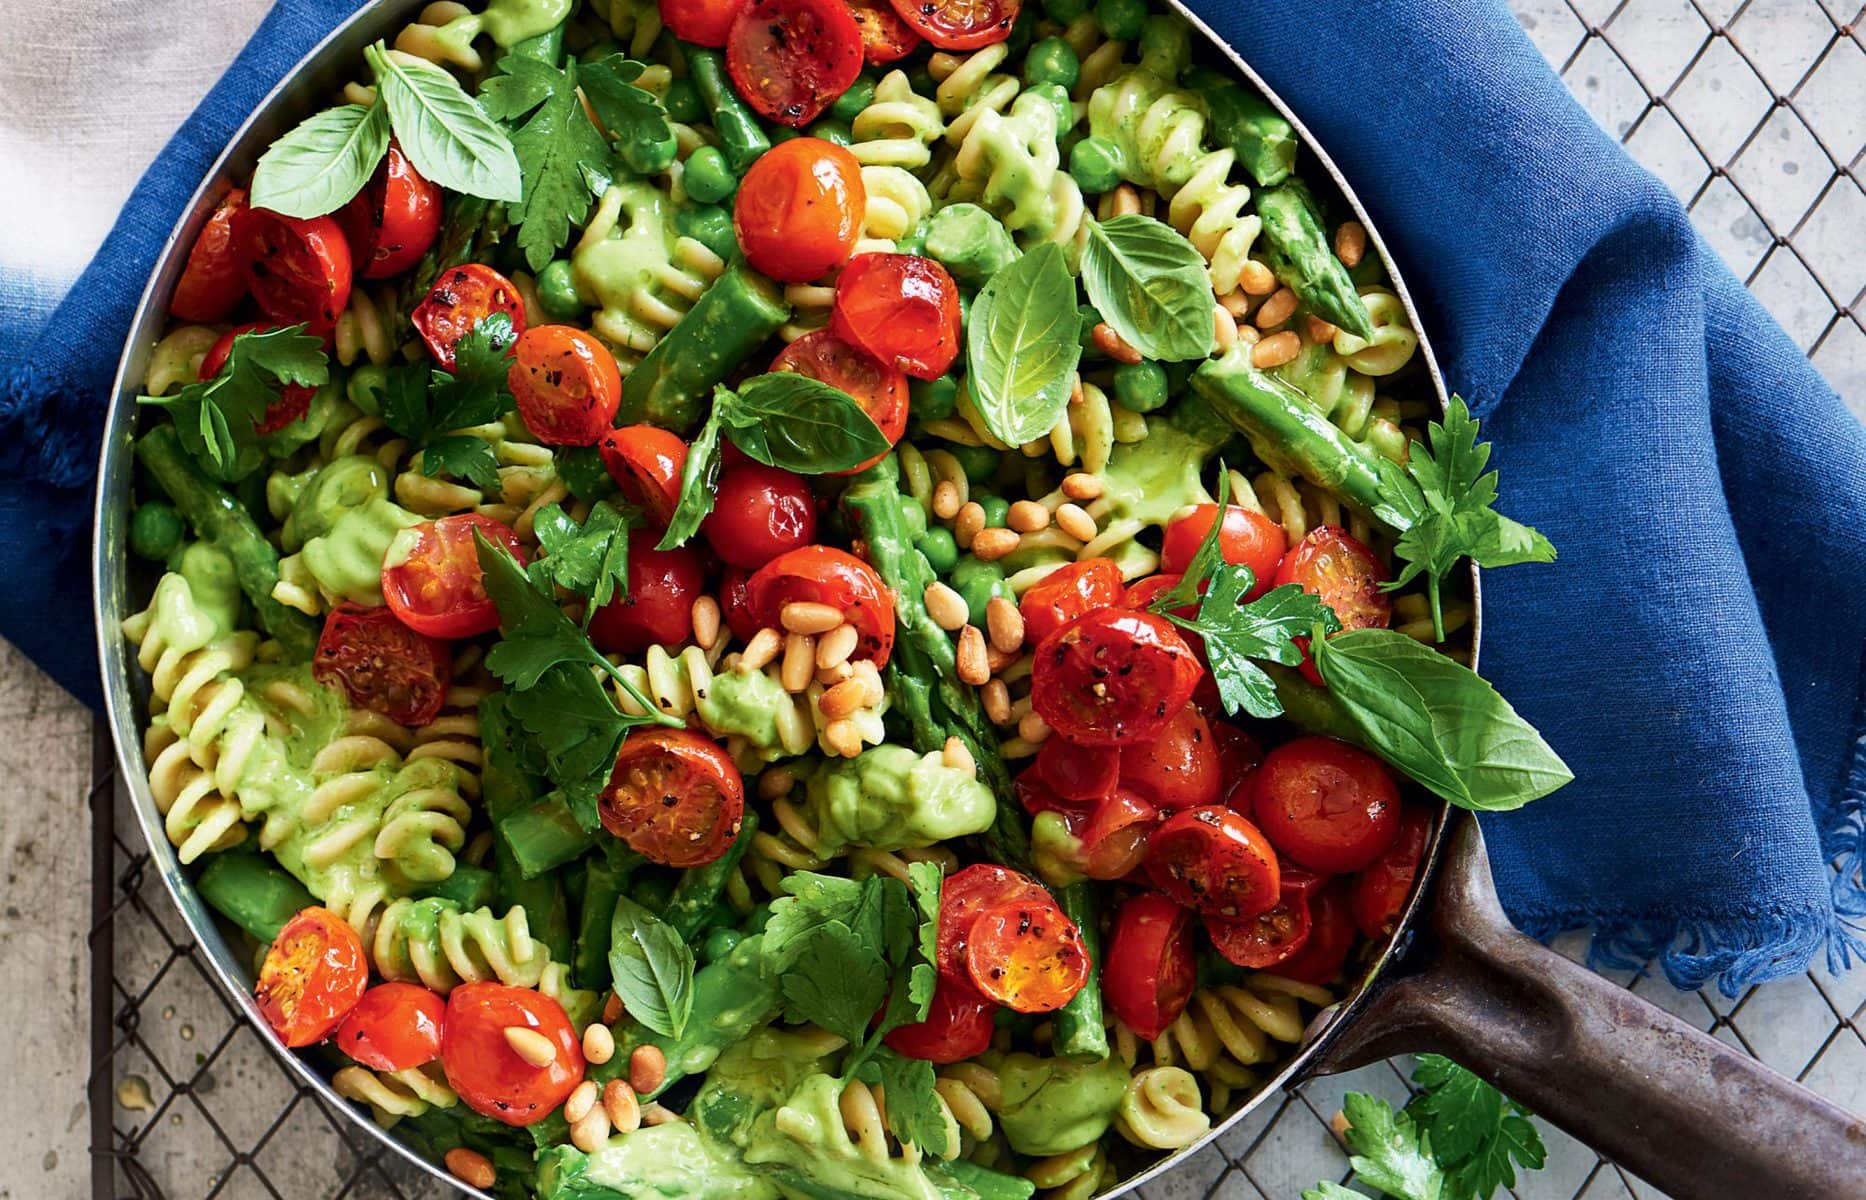 Avocado pesto pasta with peas, asparagus and roasted tomatoes